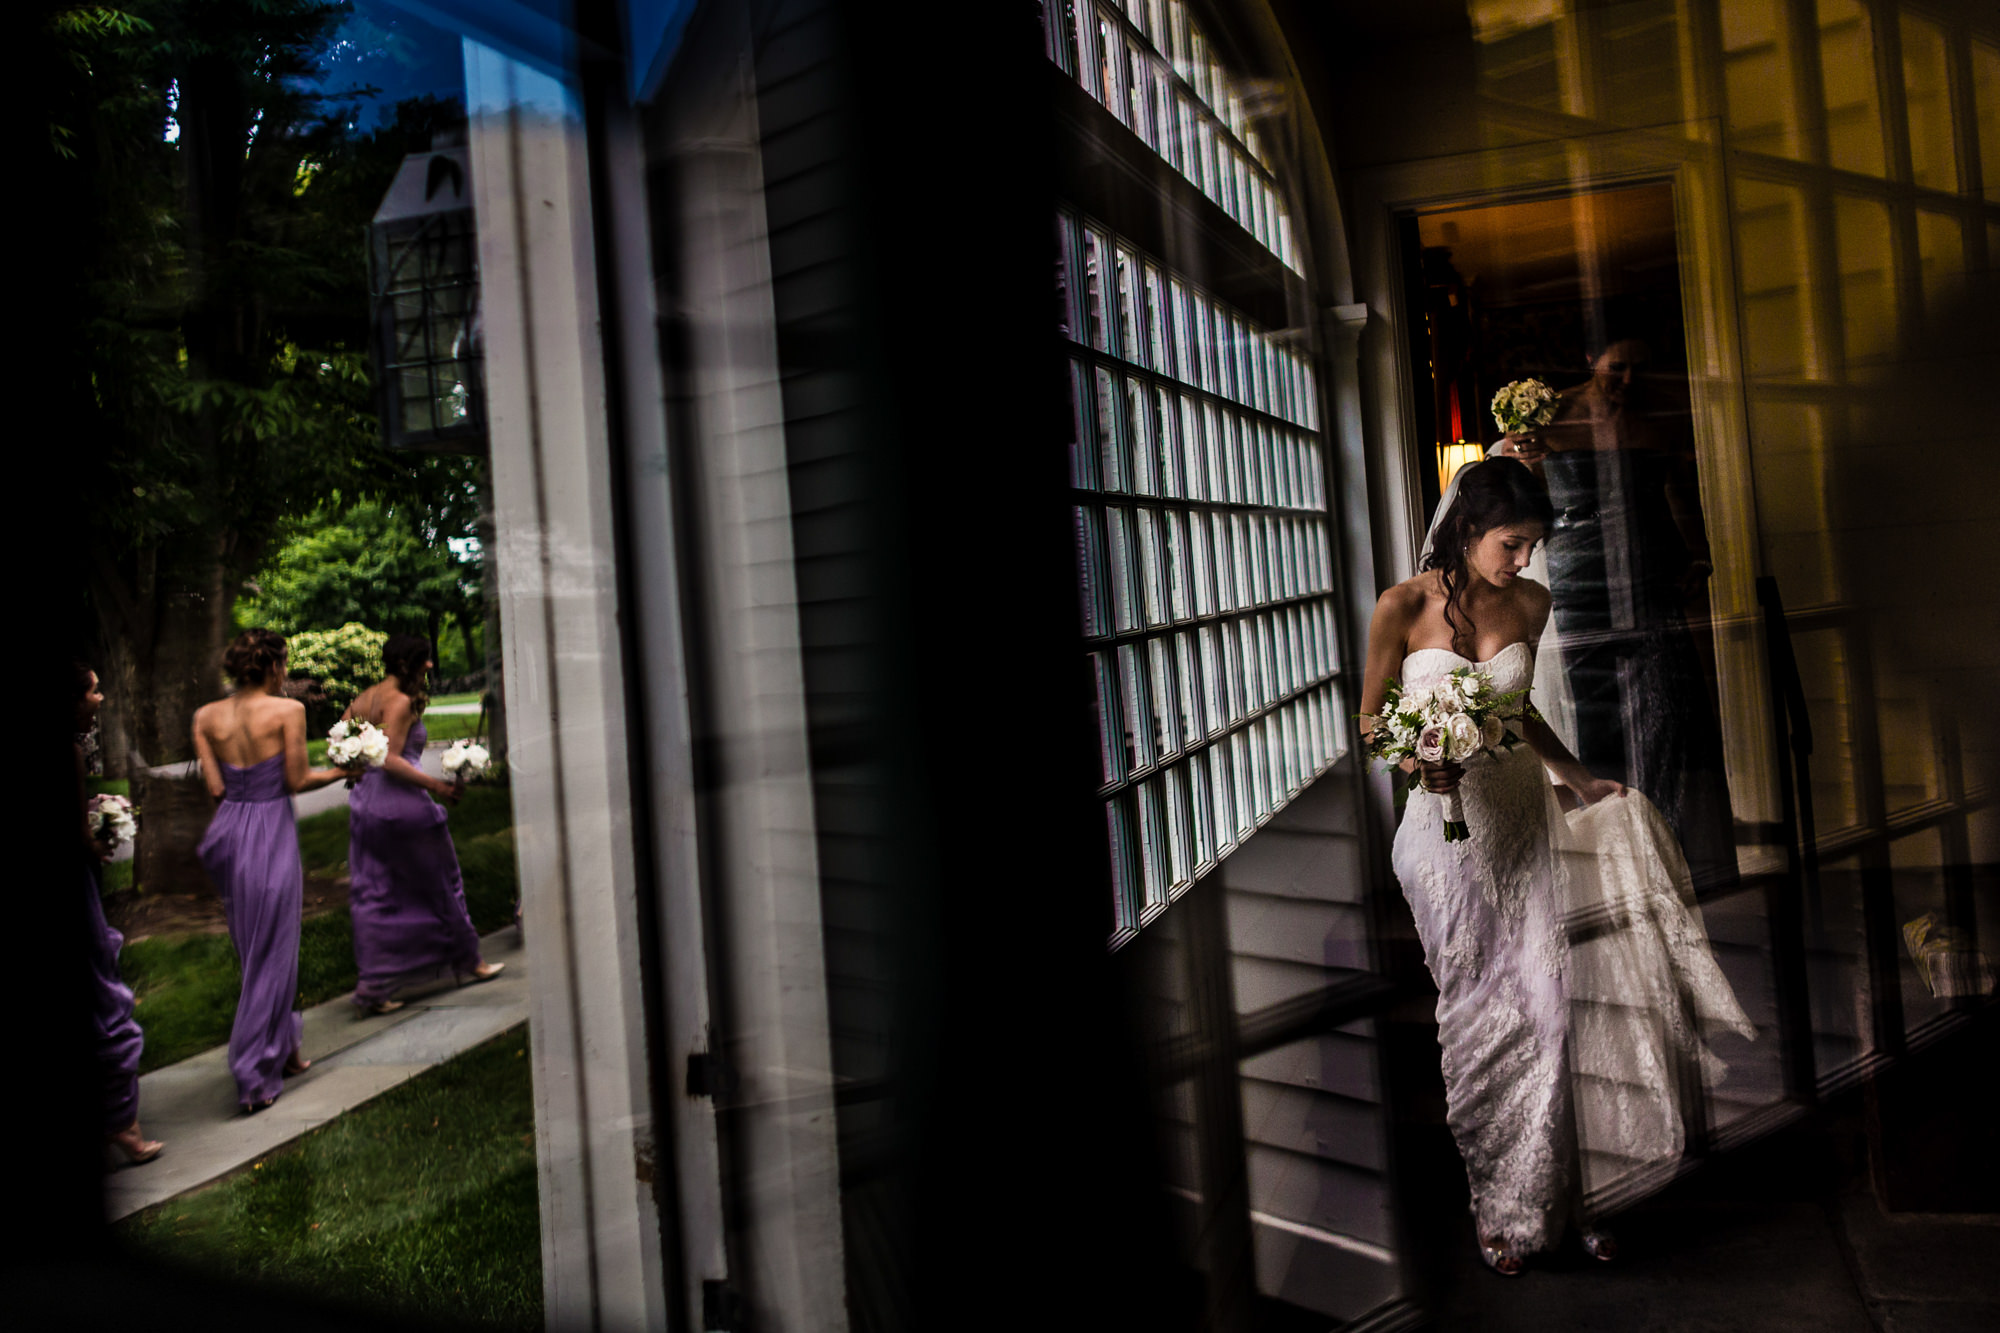 bride on her way to ceremony -  photo by Jag Studios